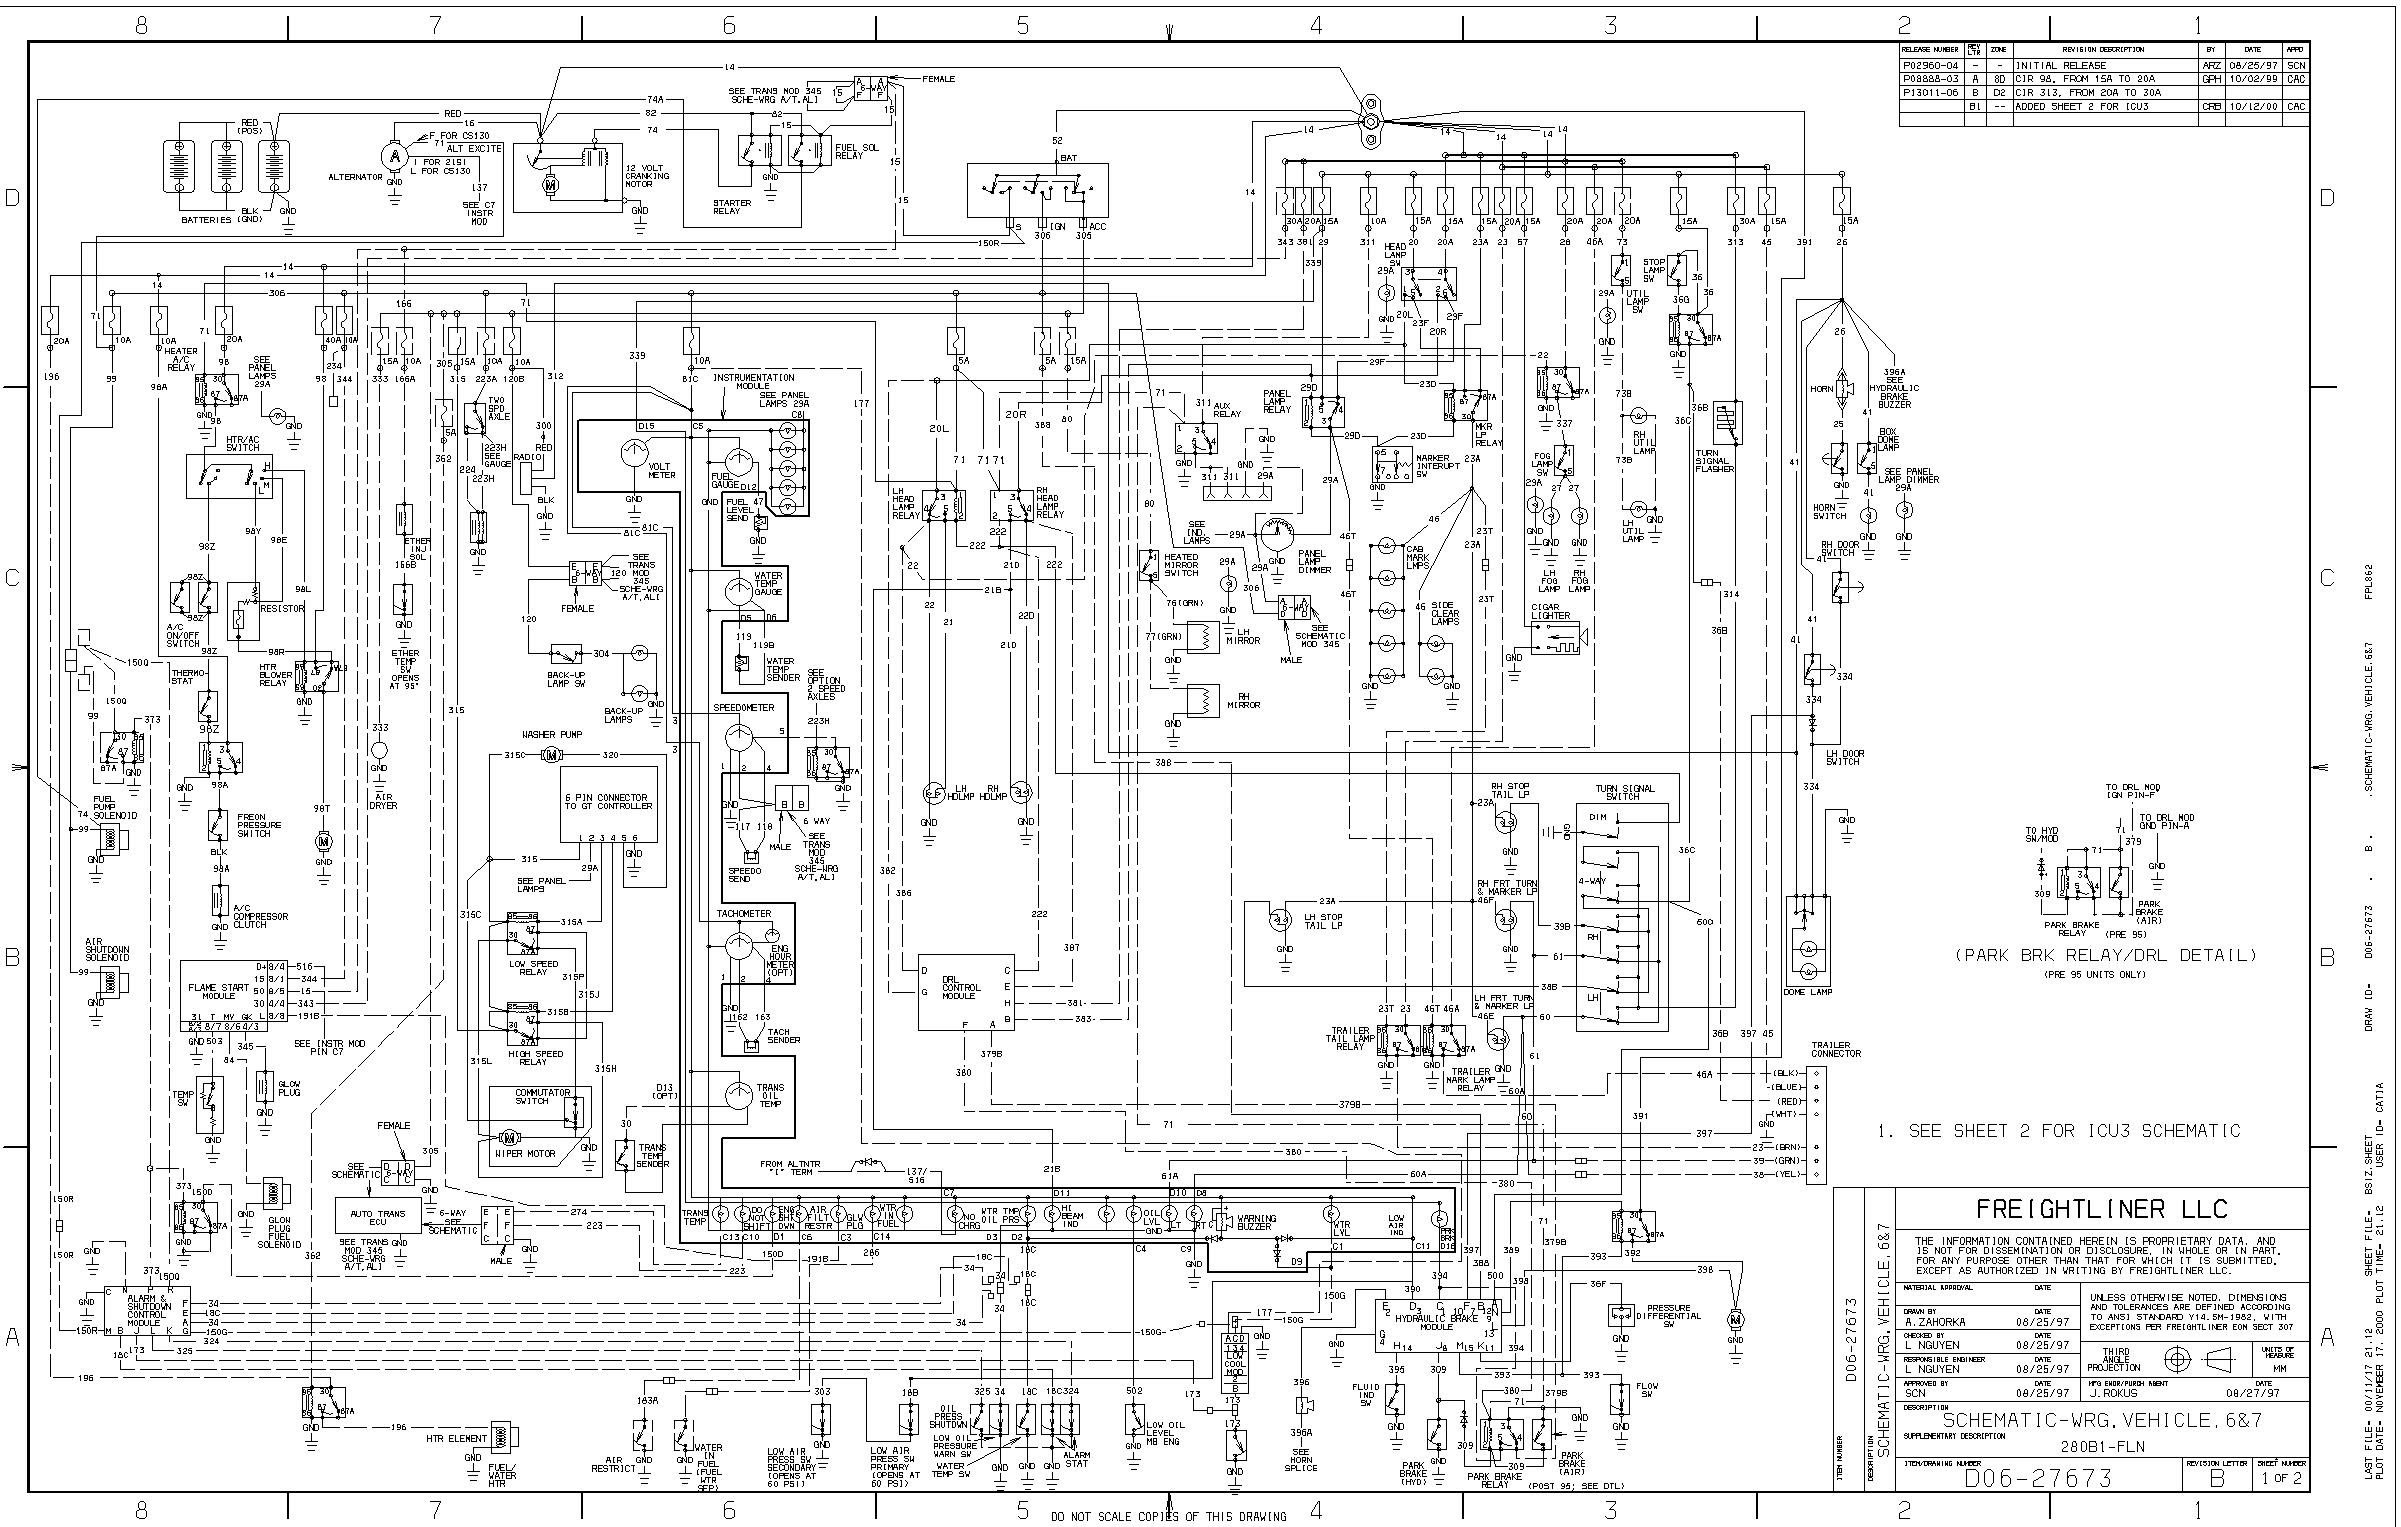 Wiring Diagram: 11 2007 Peterbilt 379 Fuse Panel Diagram